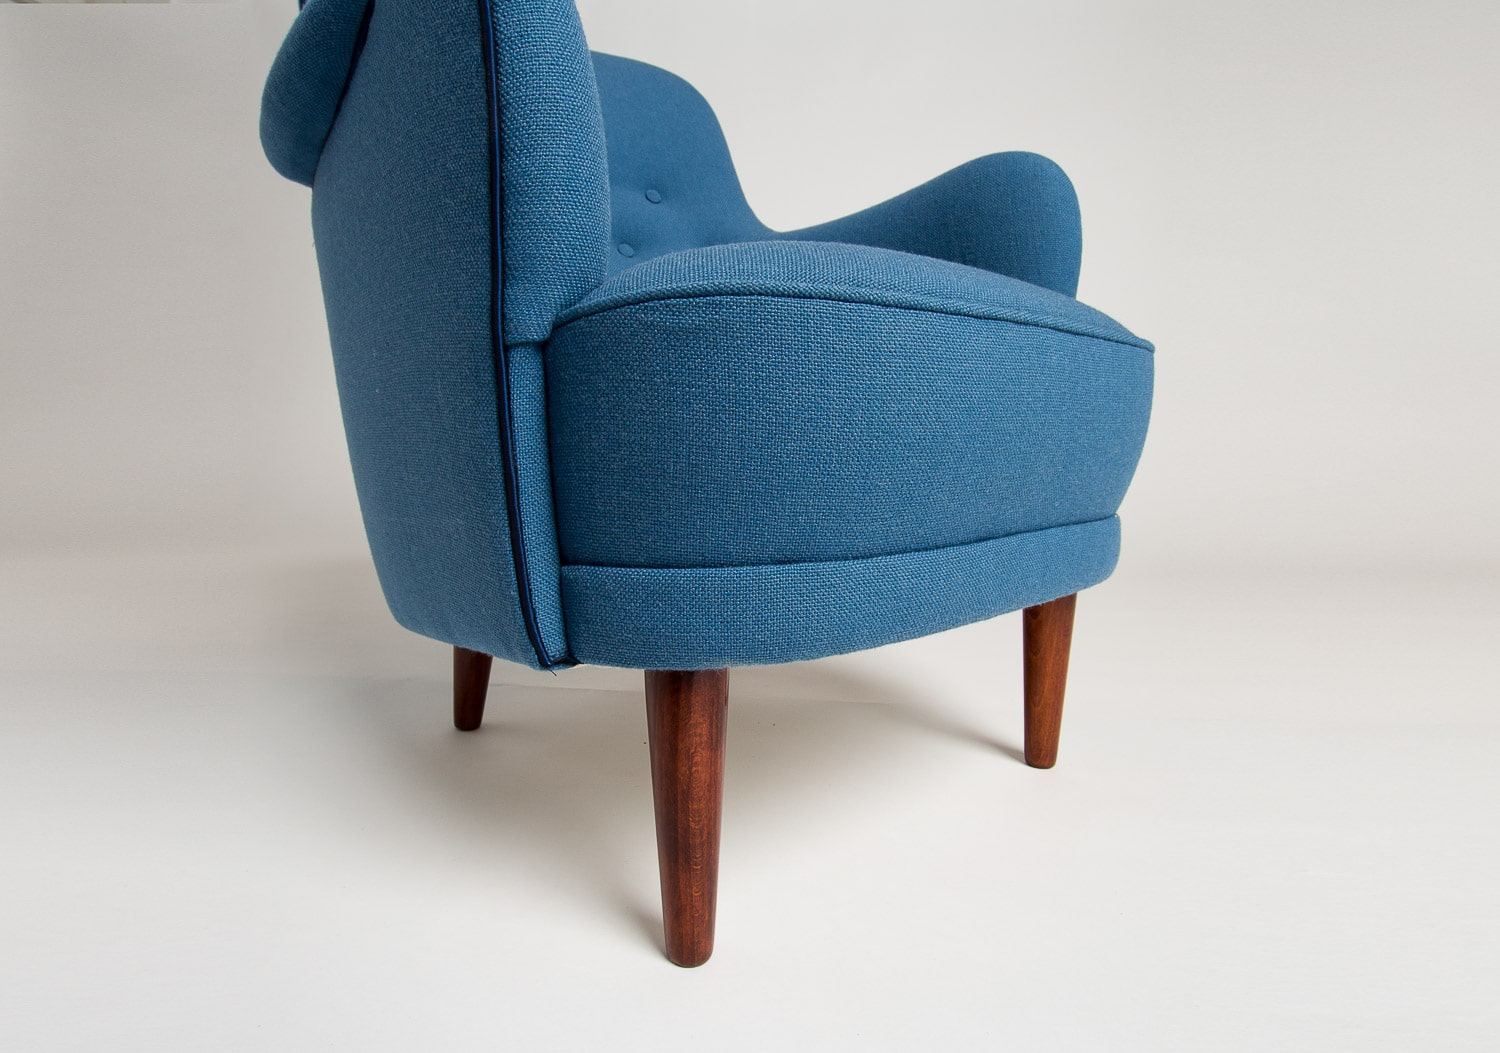 Carl Malmsten Samsas chair blue wool Swedish furniture UK